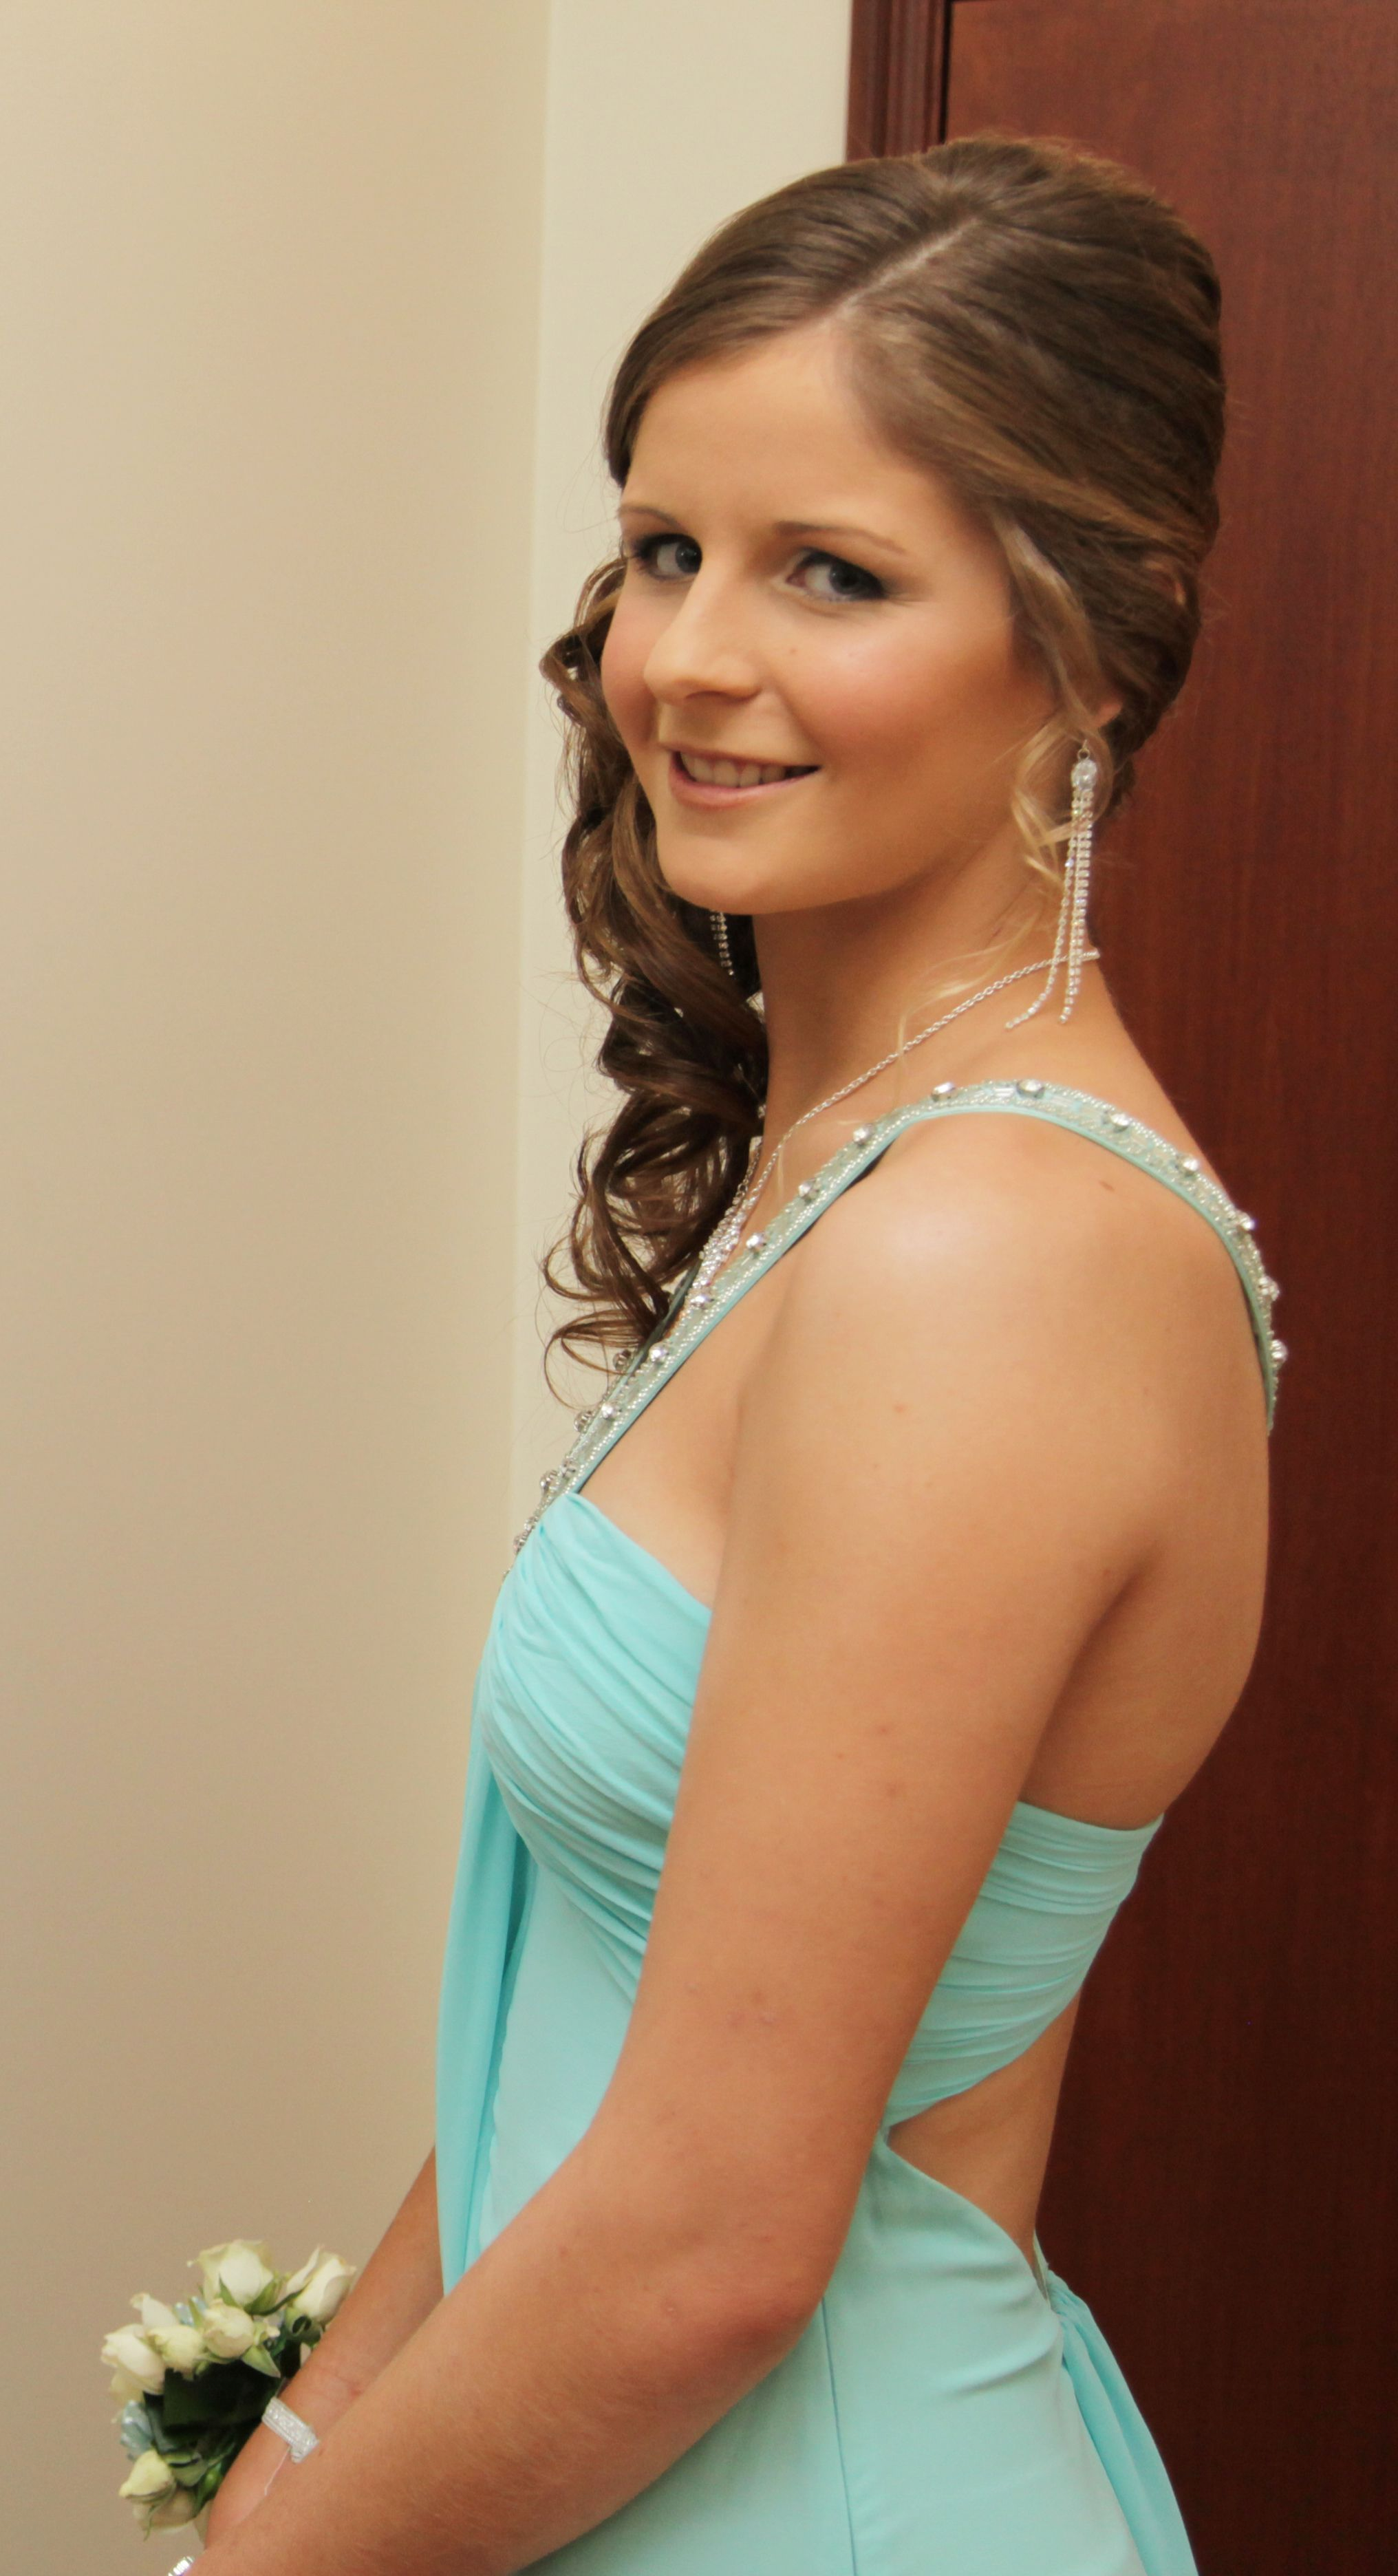 Hairstyle And Makeup For School Formal Prom Graduation Prom